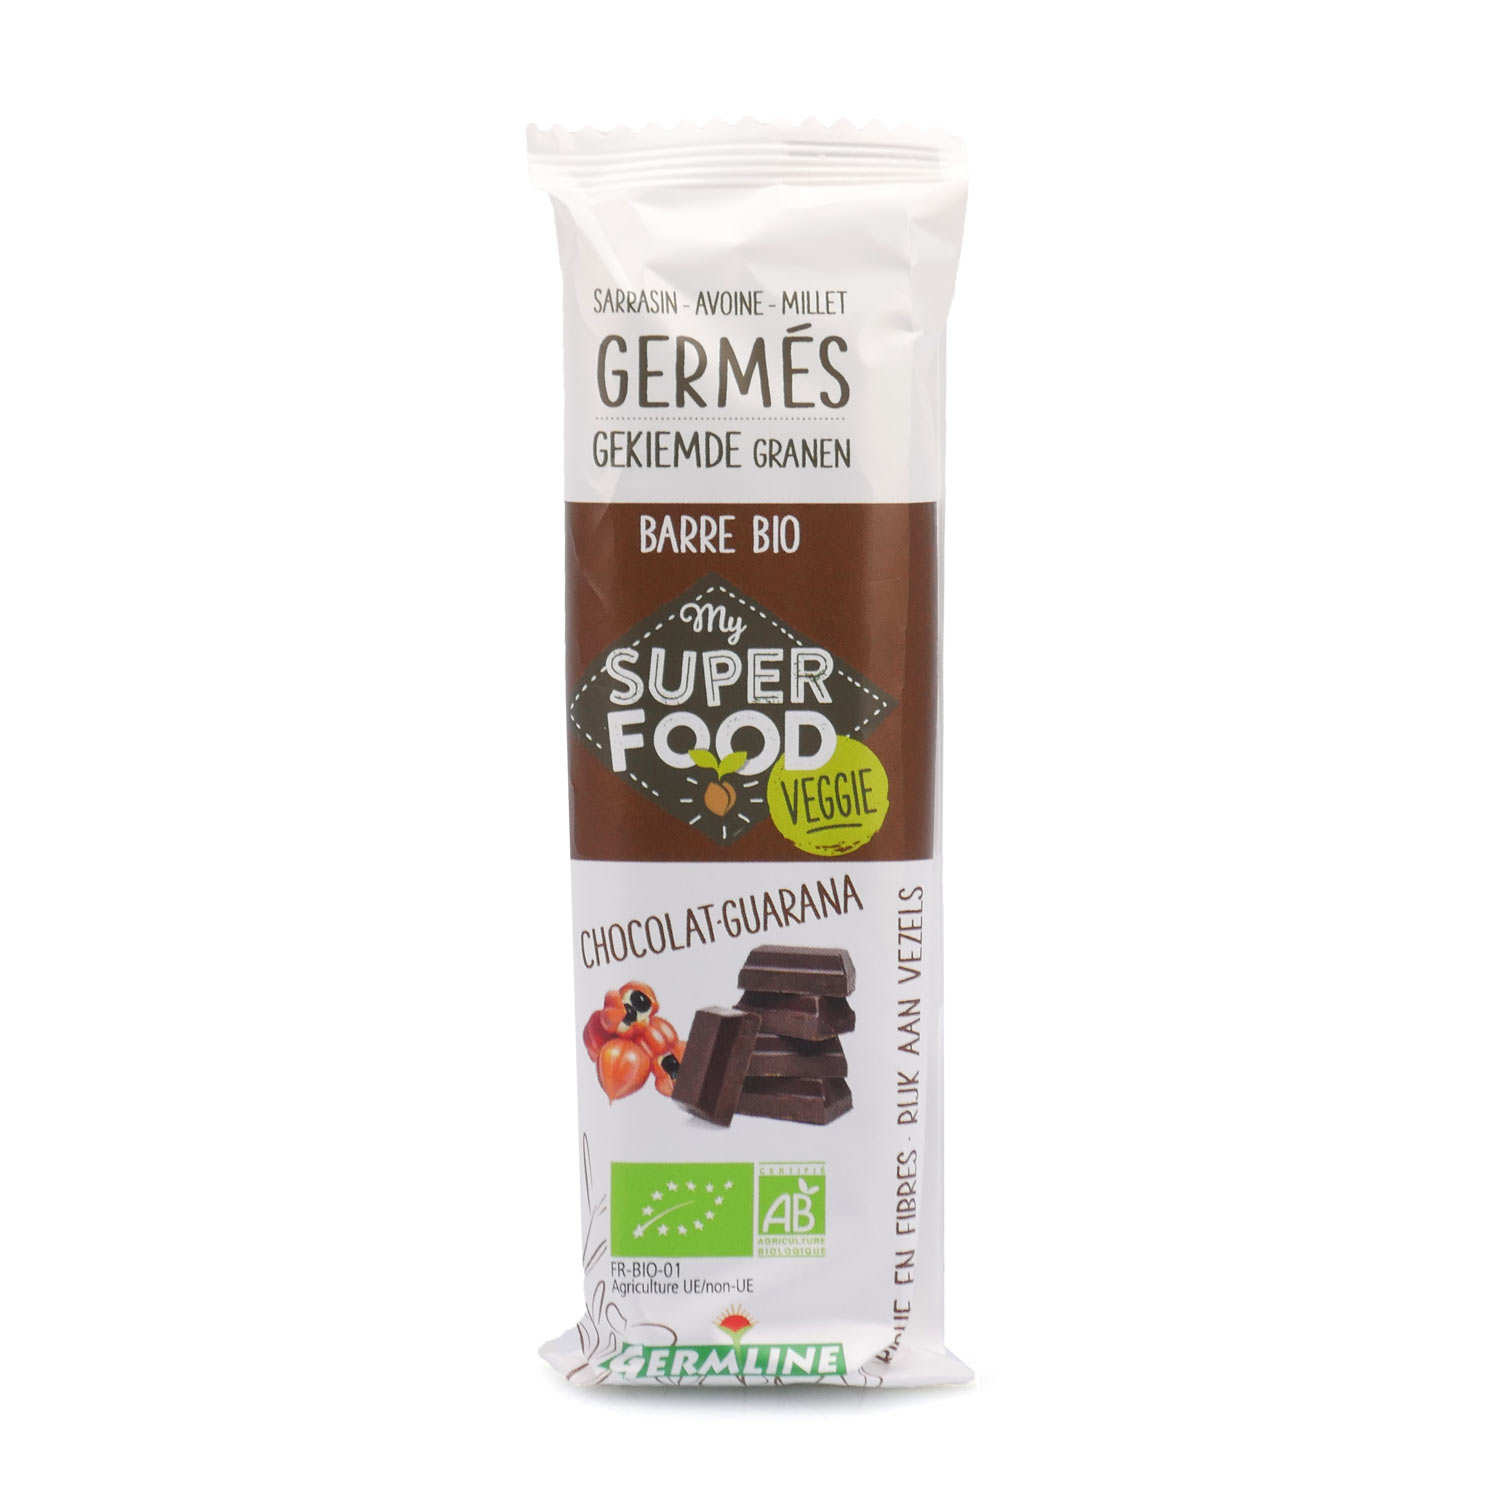 Organic and Gluten Free Sprouted Grains Bar Chocolate and Guarana